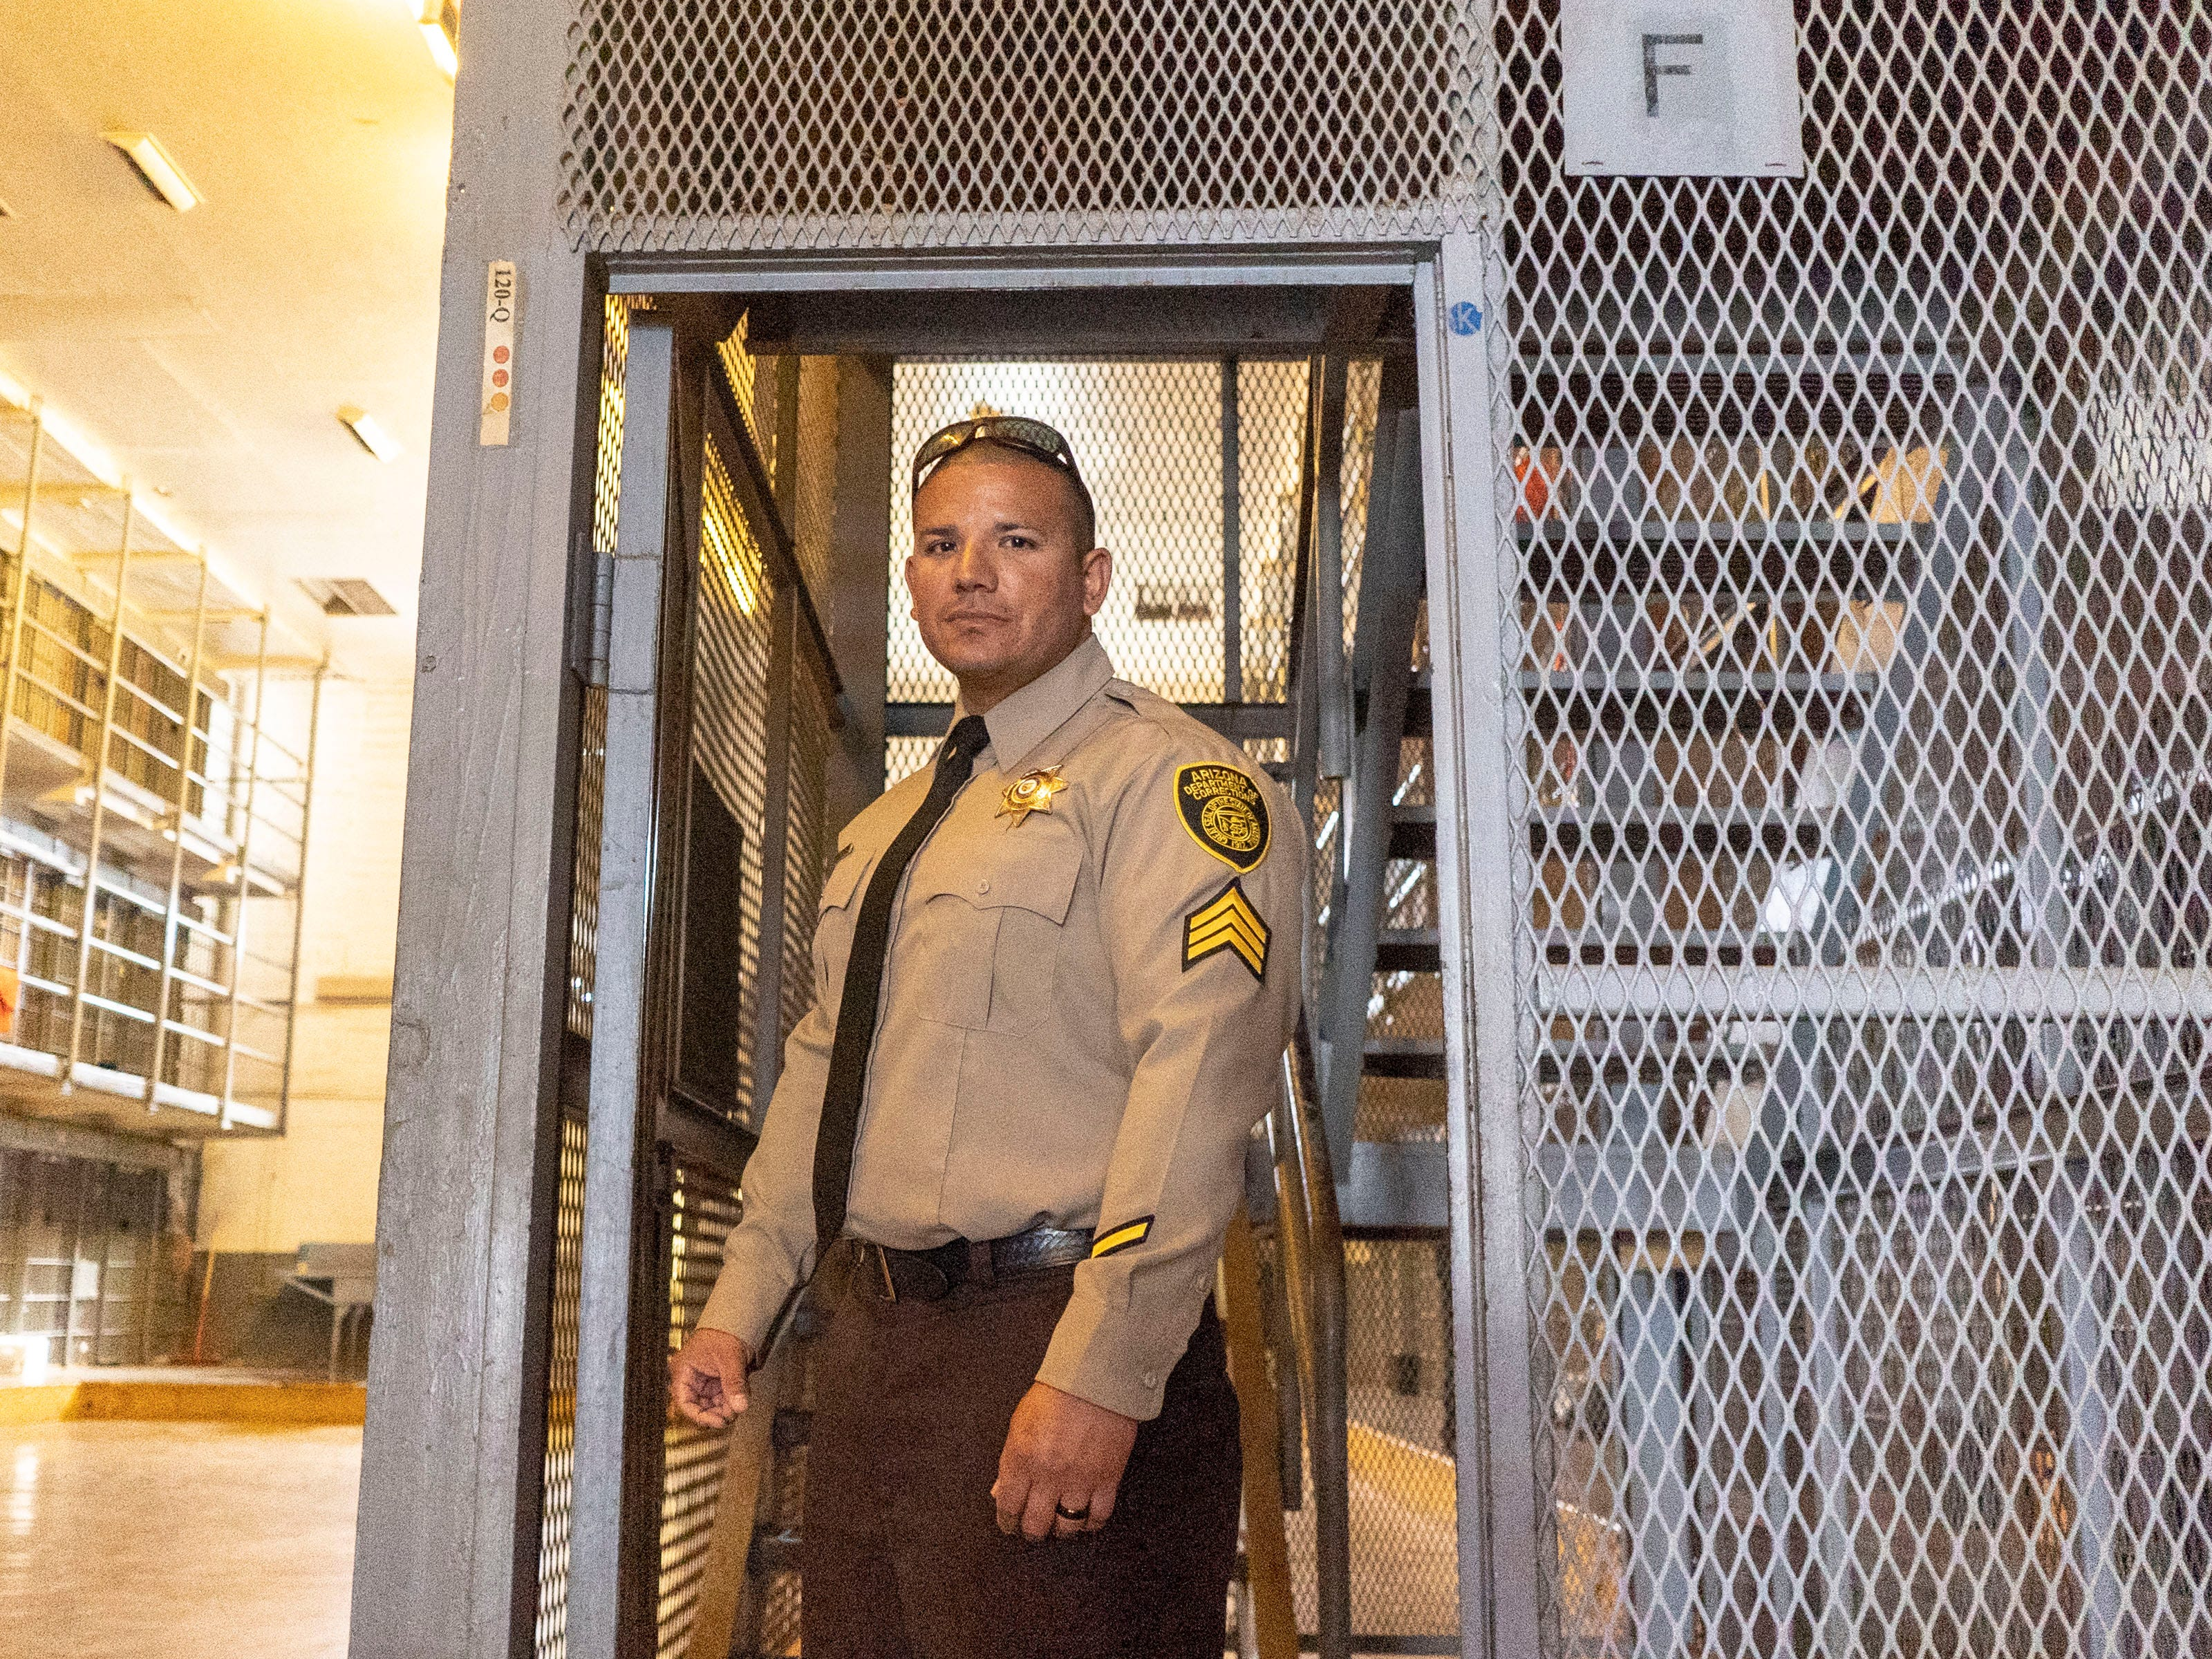 Marcus Sandoval oversees officers who guard death row inmates at the Central Unit of the Arizona State Prison Complex in Florence.